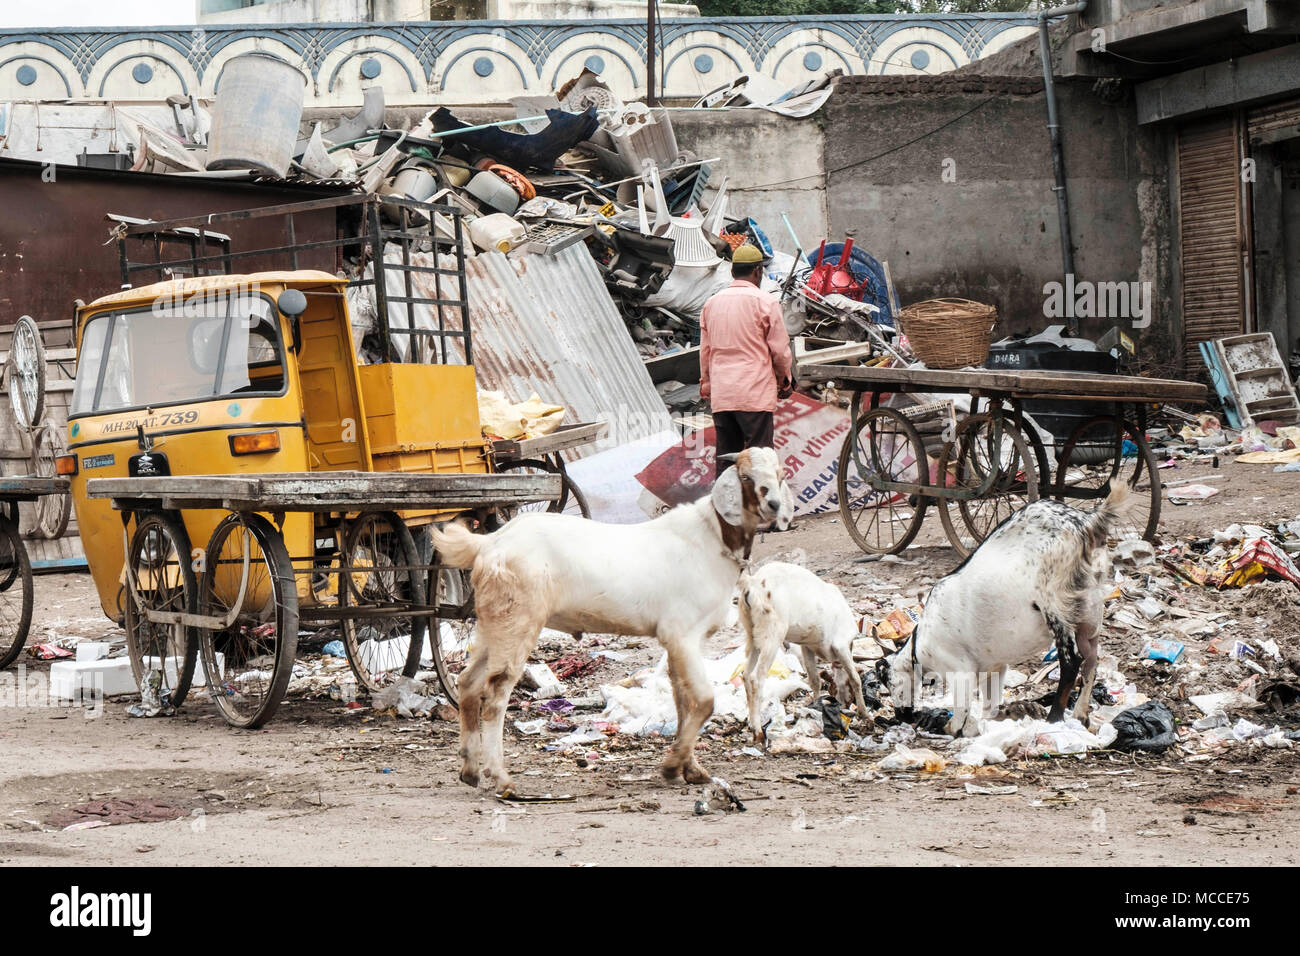 Goats eating plastic trash in a poor area of an Indian city - Stock Image